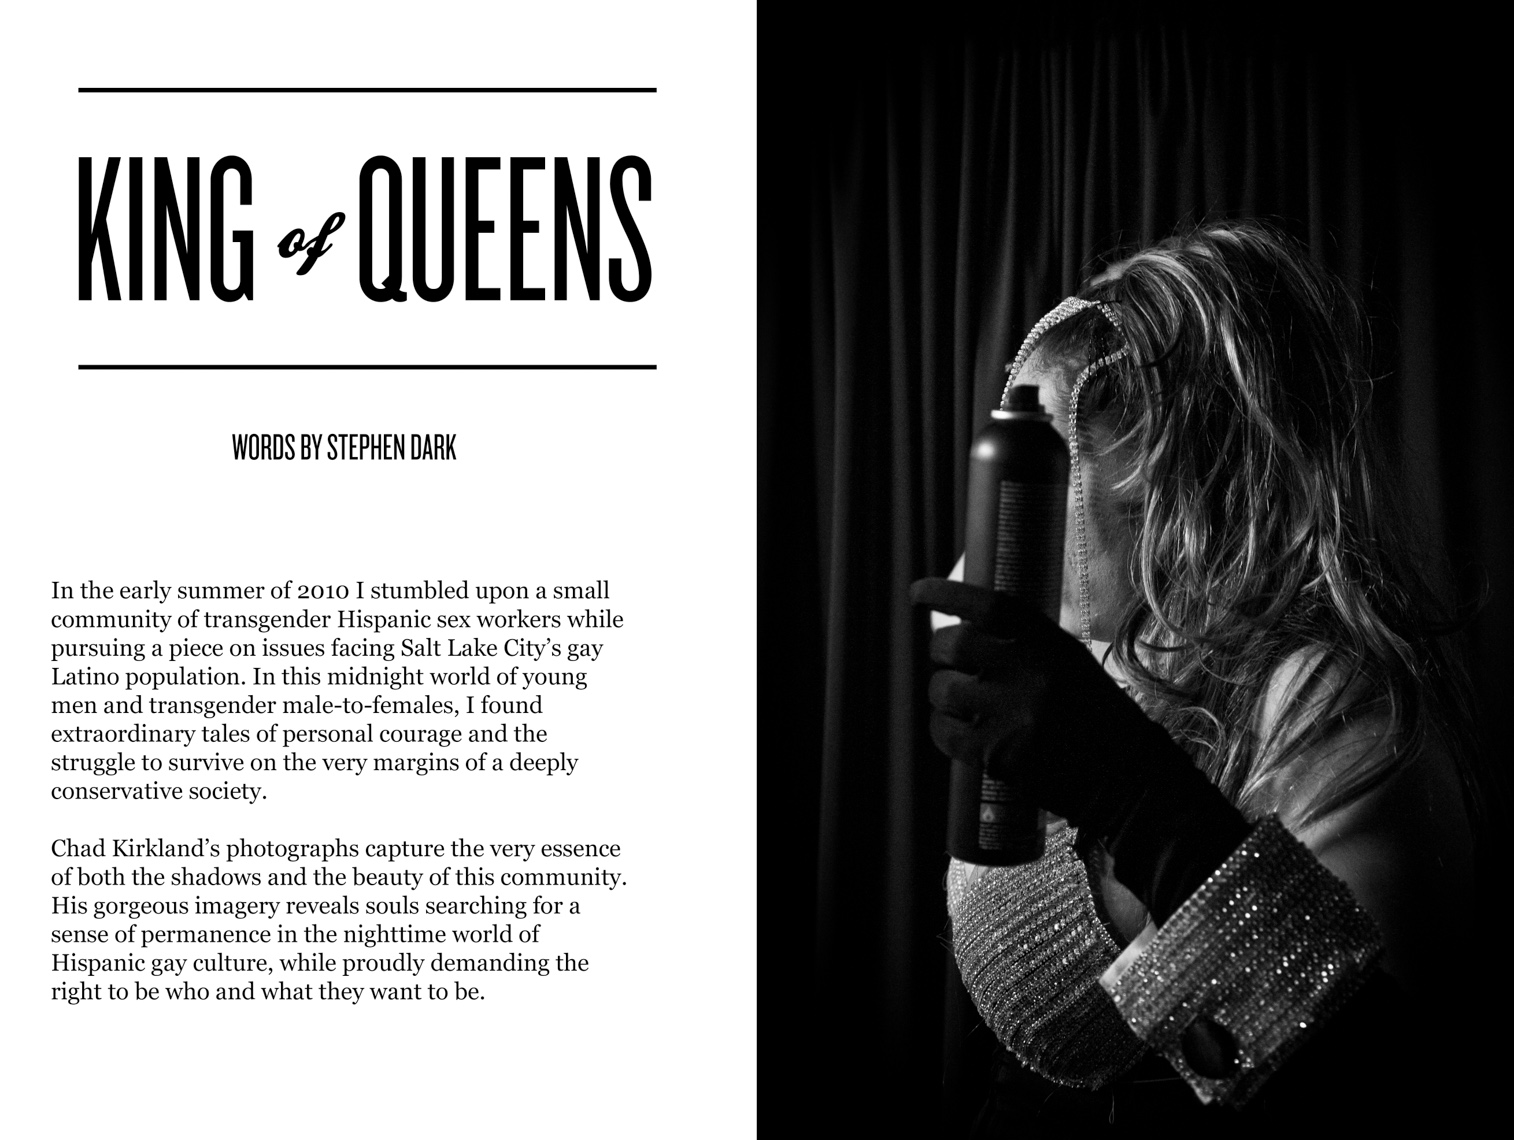 King of Queens editorial - Salt Lake City Weekly